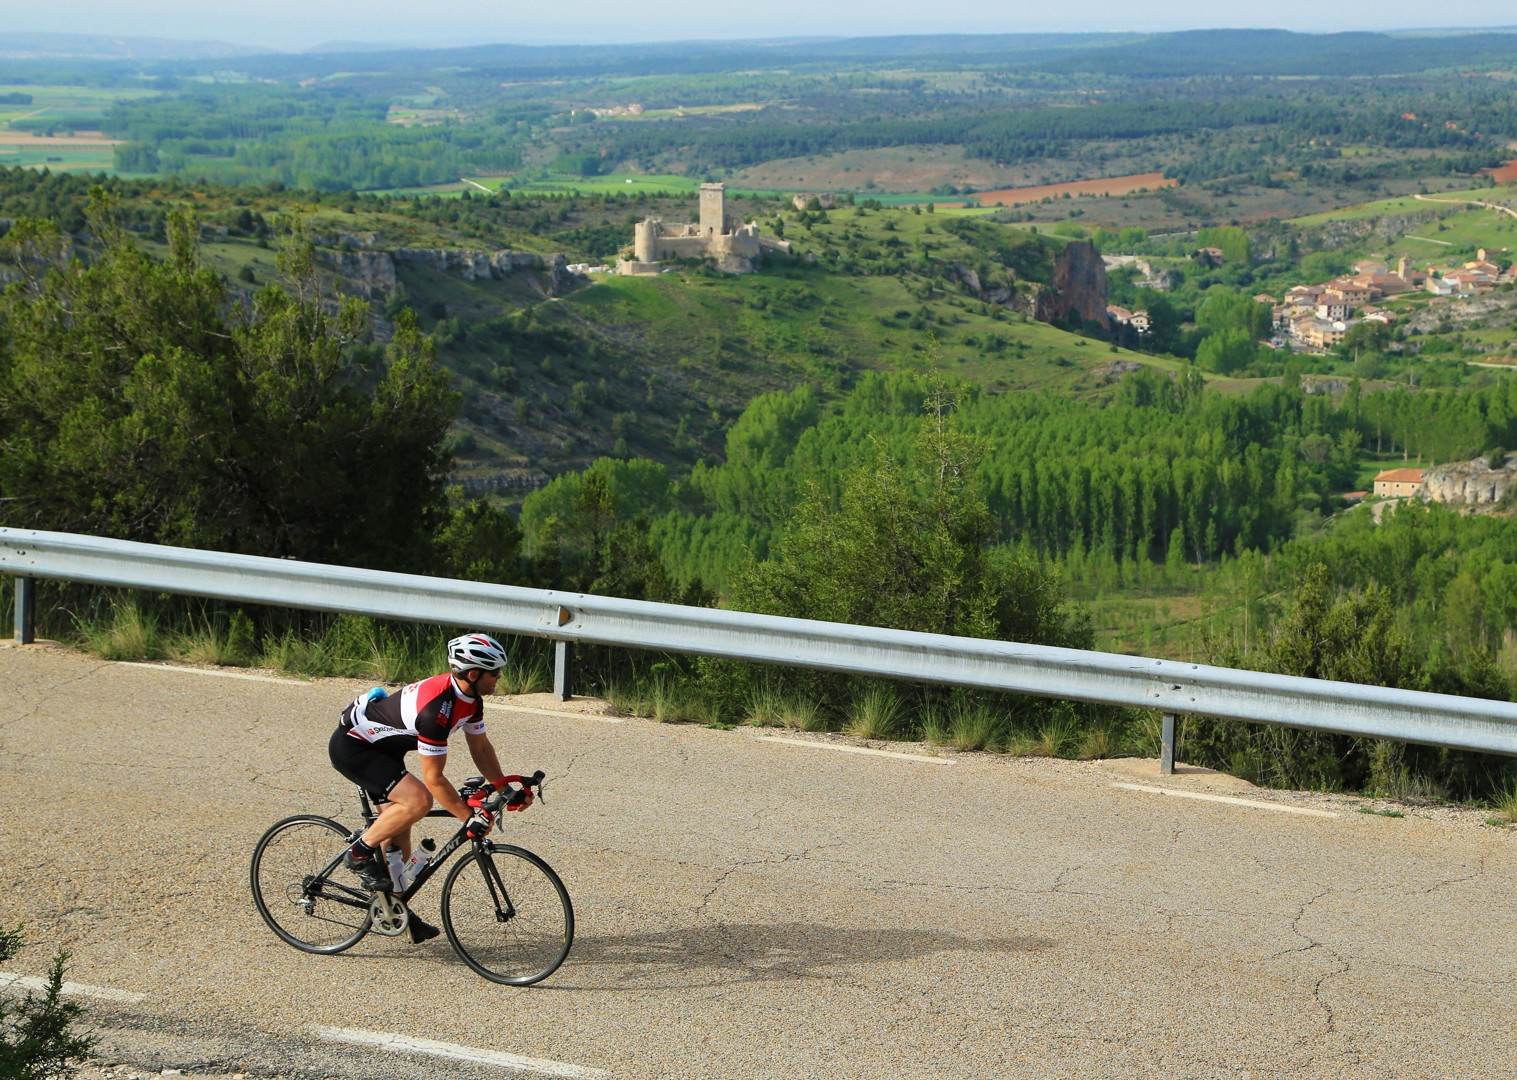 basque-country-to-andalucia-cycling-holiday.jpg - Spain - Basque Country to Andalucia - North to South - 21 Day - Guided Road Cycling Holiday - Road Cycling